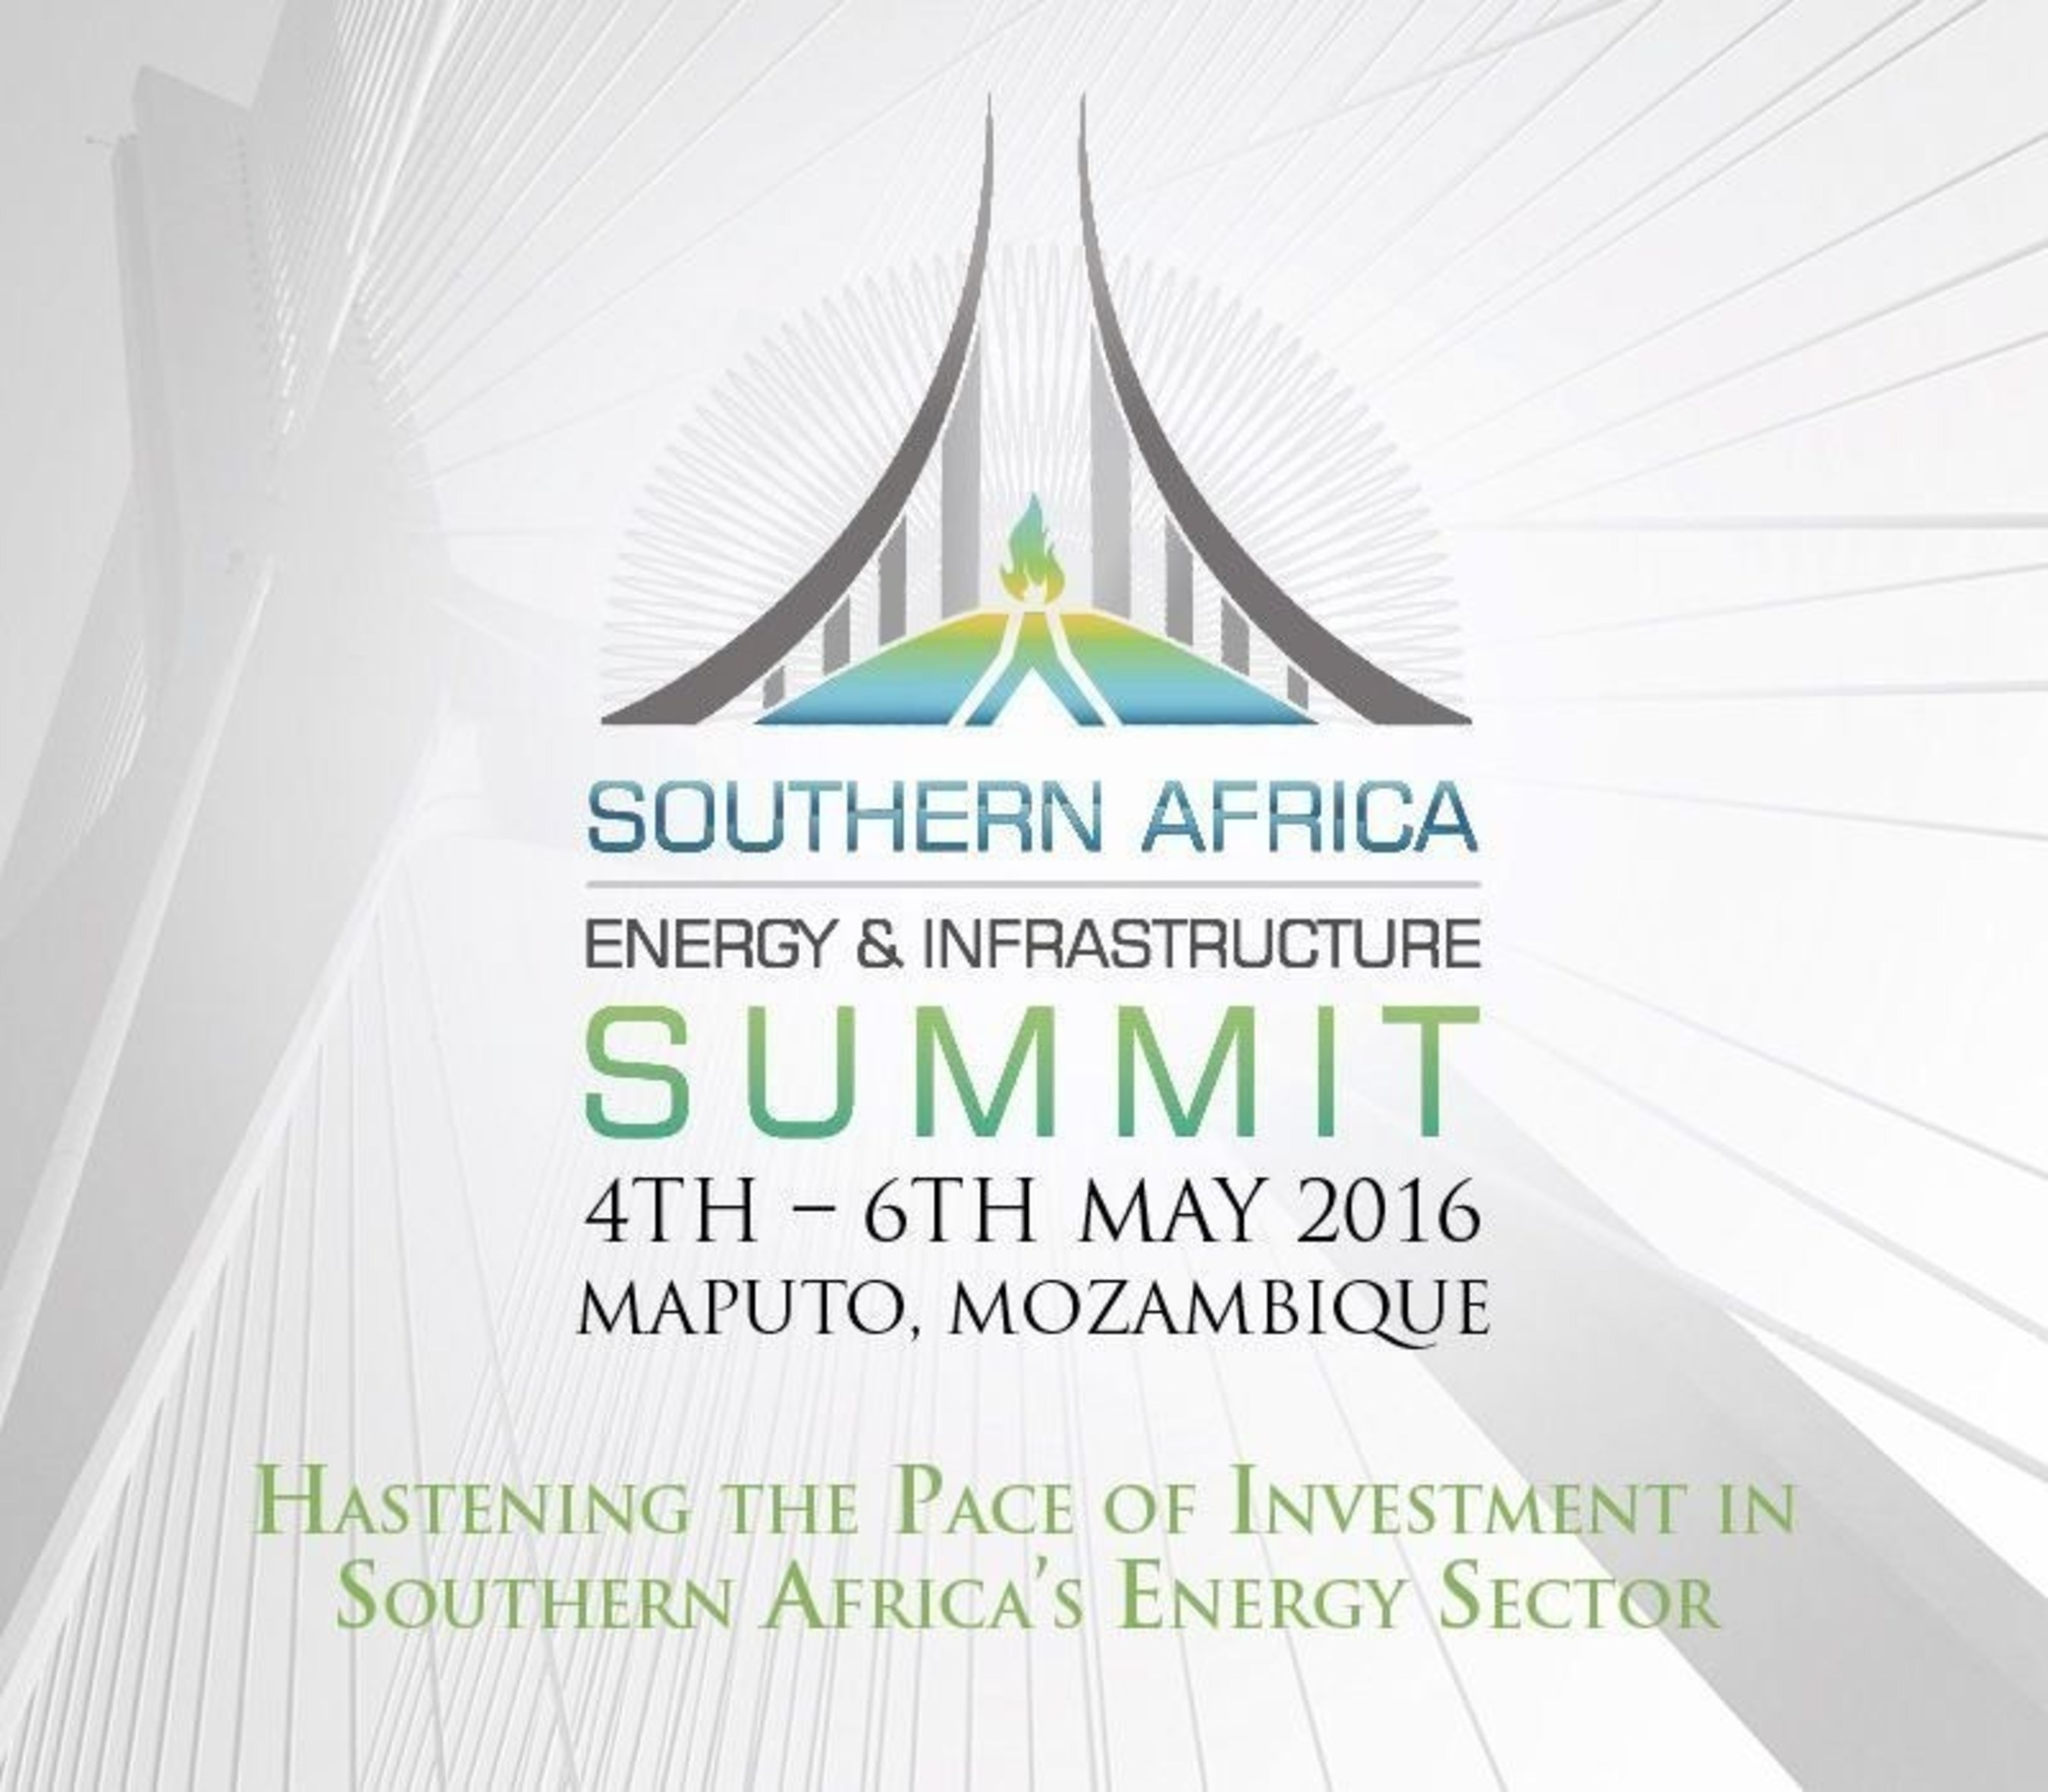 Southern Africa Energy & Infrastructure Summit